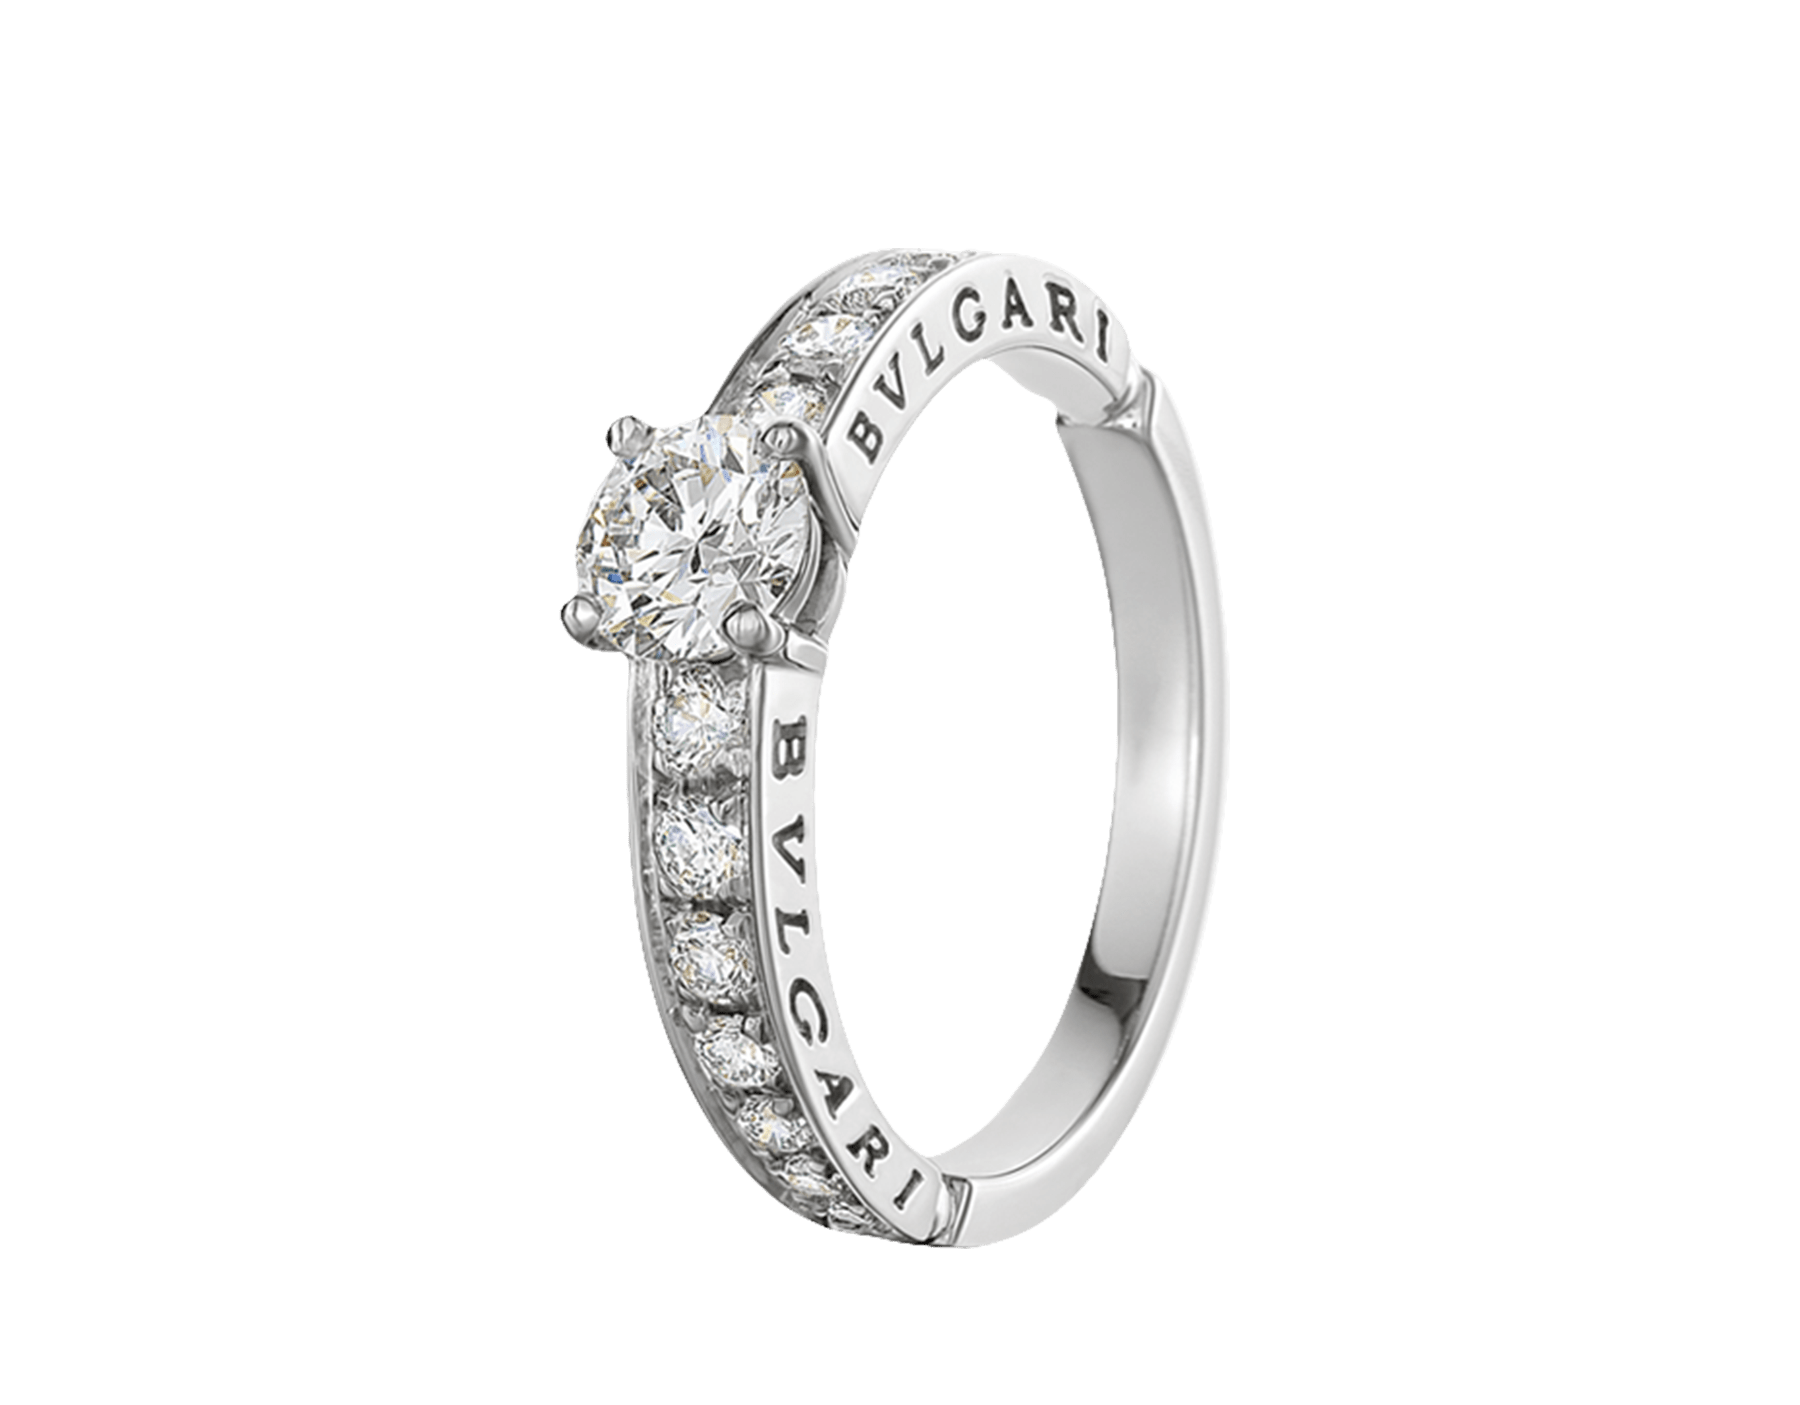 Dedicata a Venezia: 1503 solitaire ring in platinum with a round brilliant-cut diamond, pavé diamonds and engraved logo. Named after the year in which the first engagement ring was offered in Venice. 343991 image 1